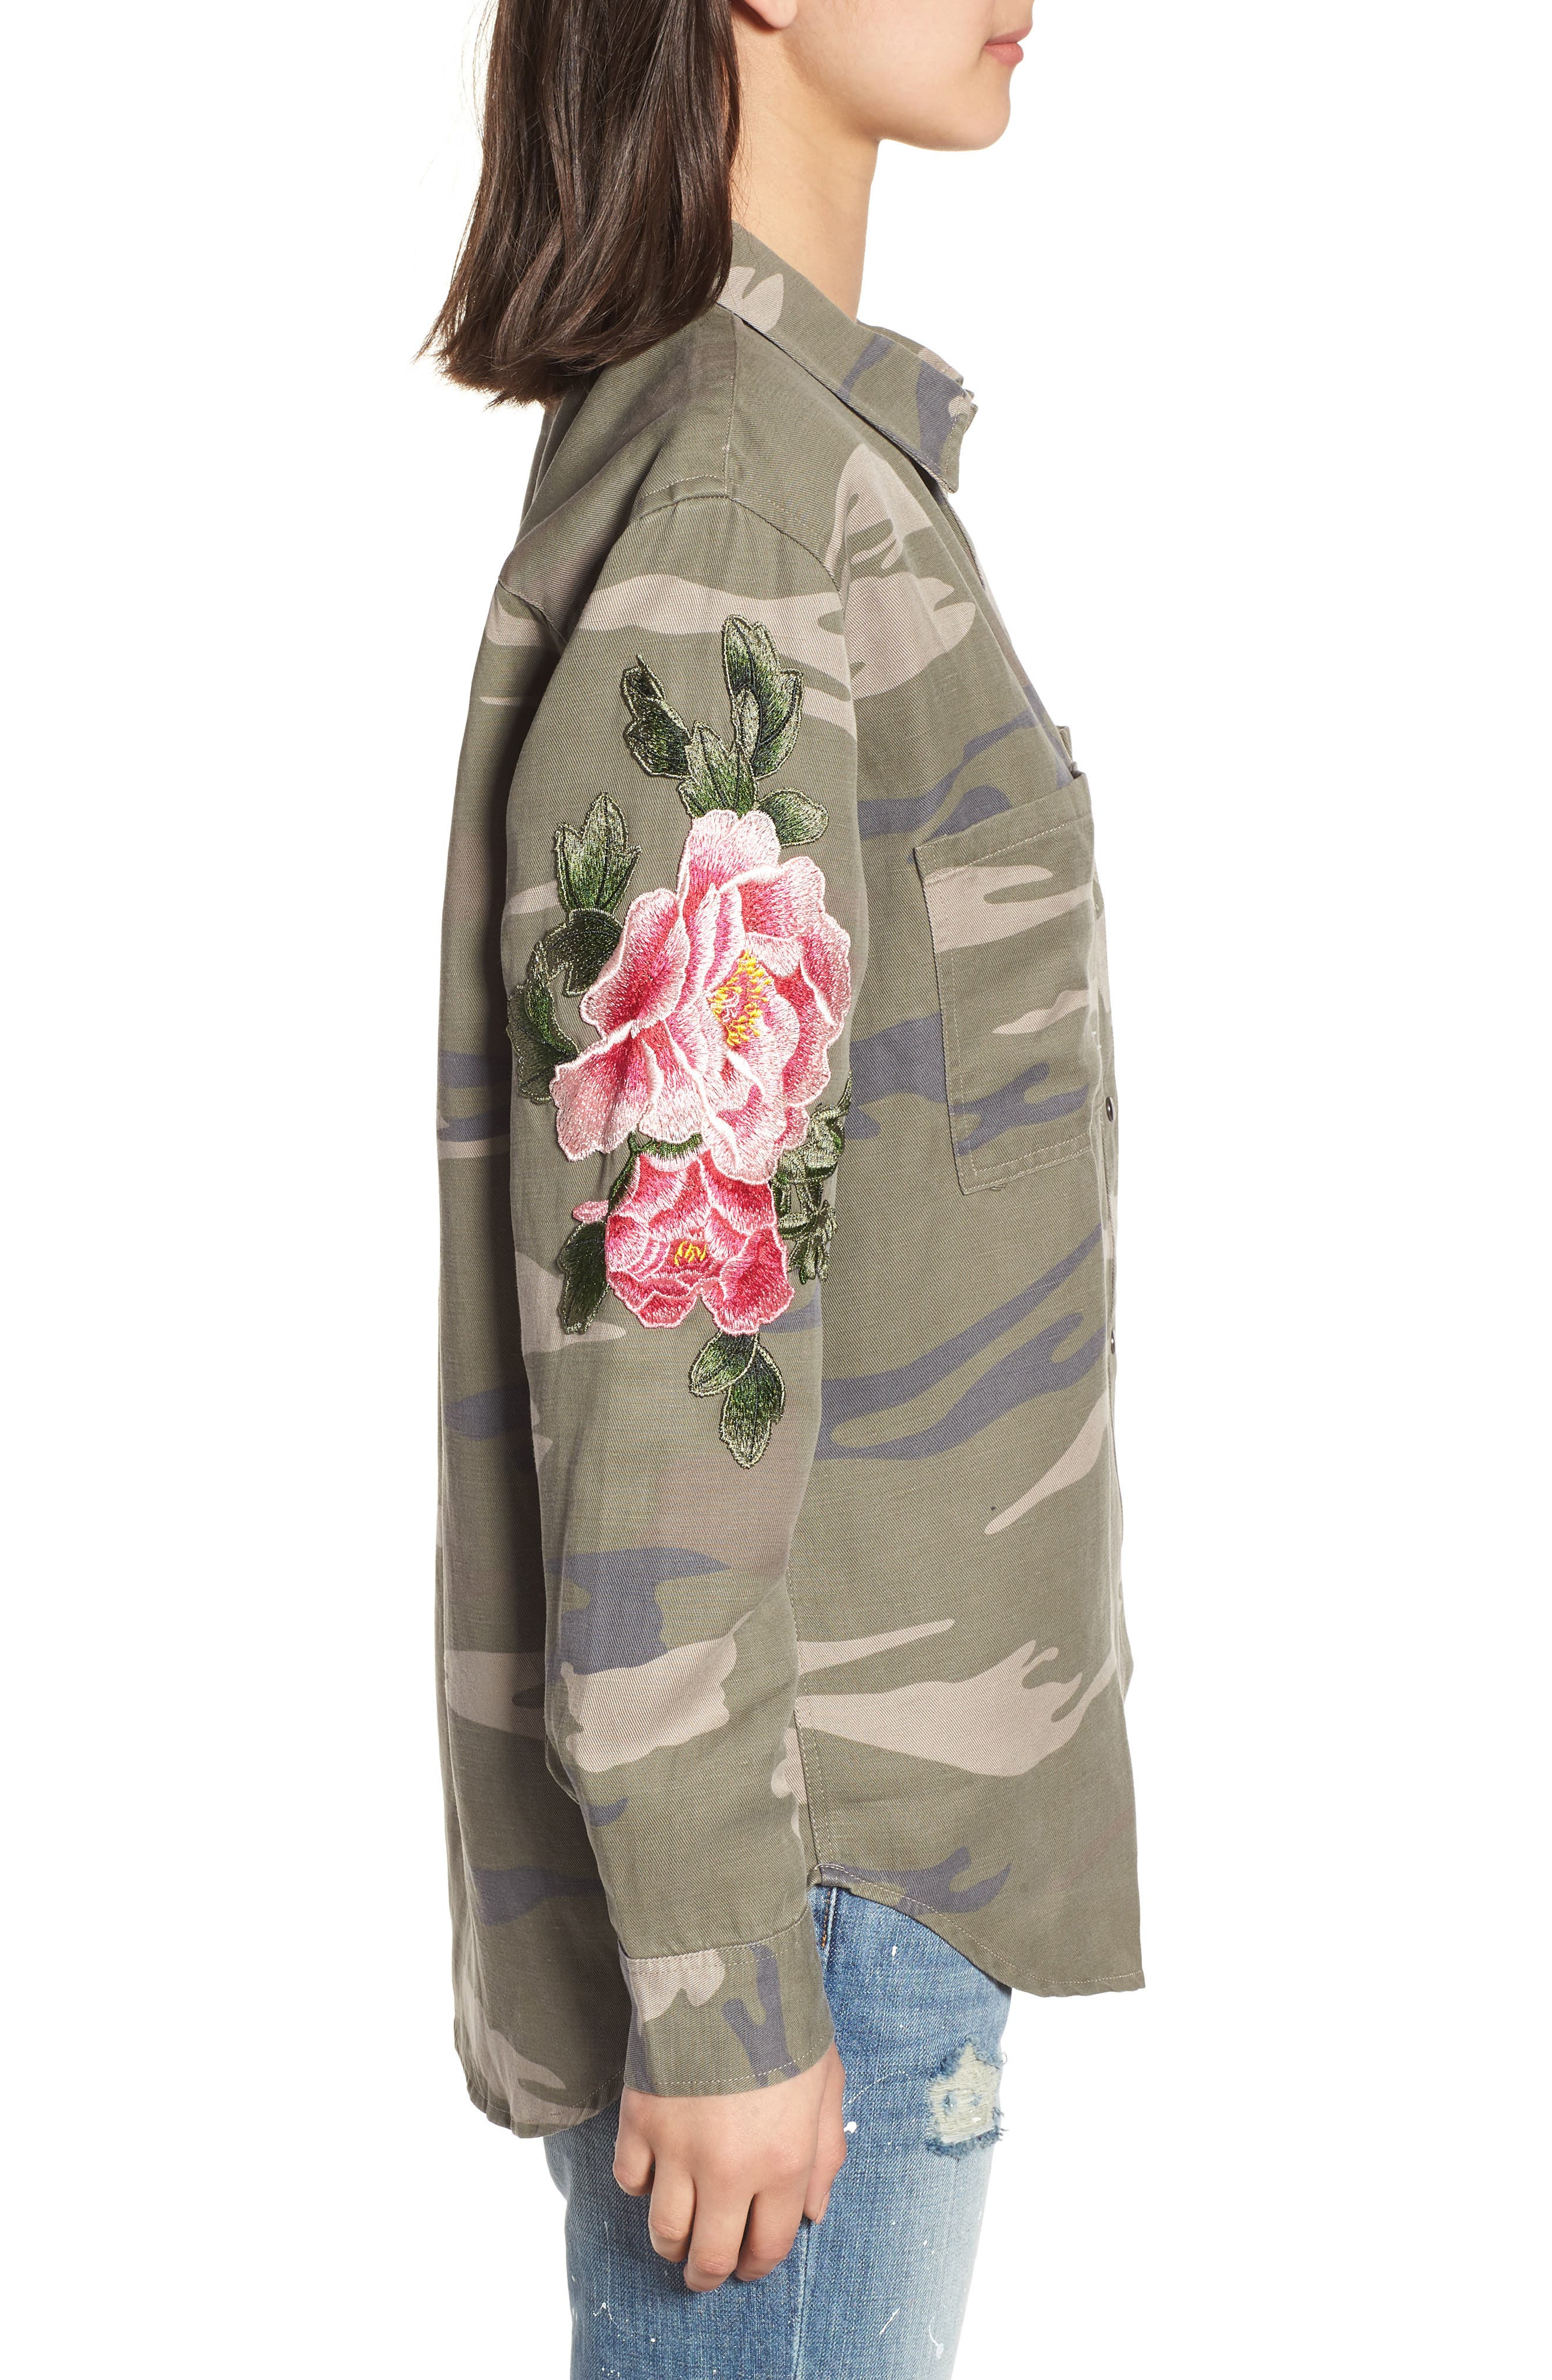 Marcel Embroidered Shirt,                             Alternate thumbnail 3, color,                             Sage Camo With Floral